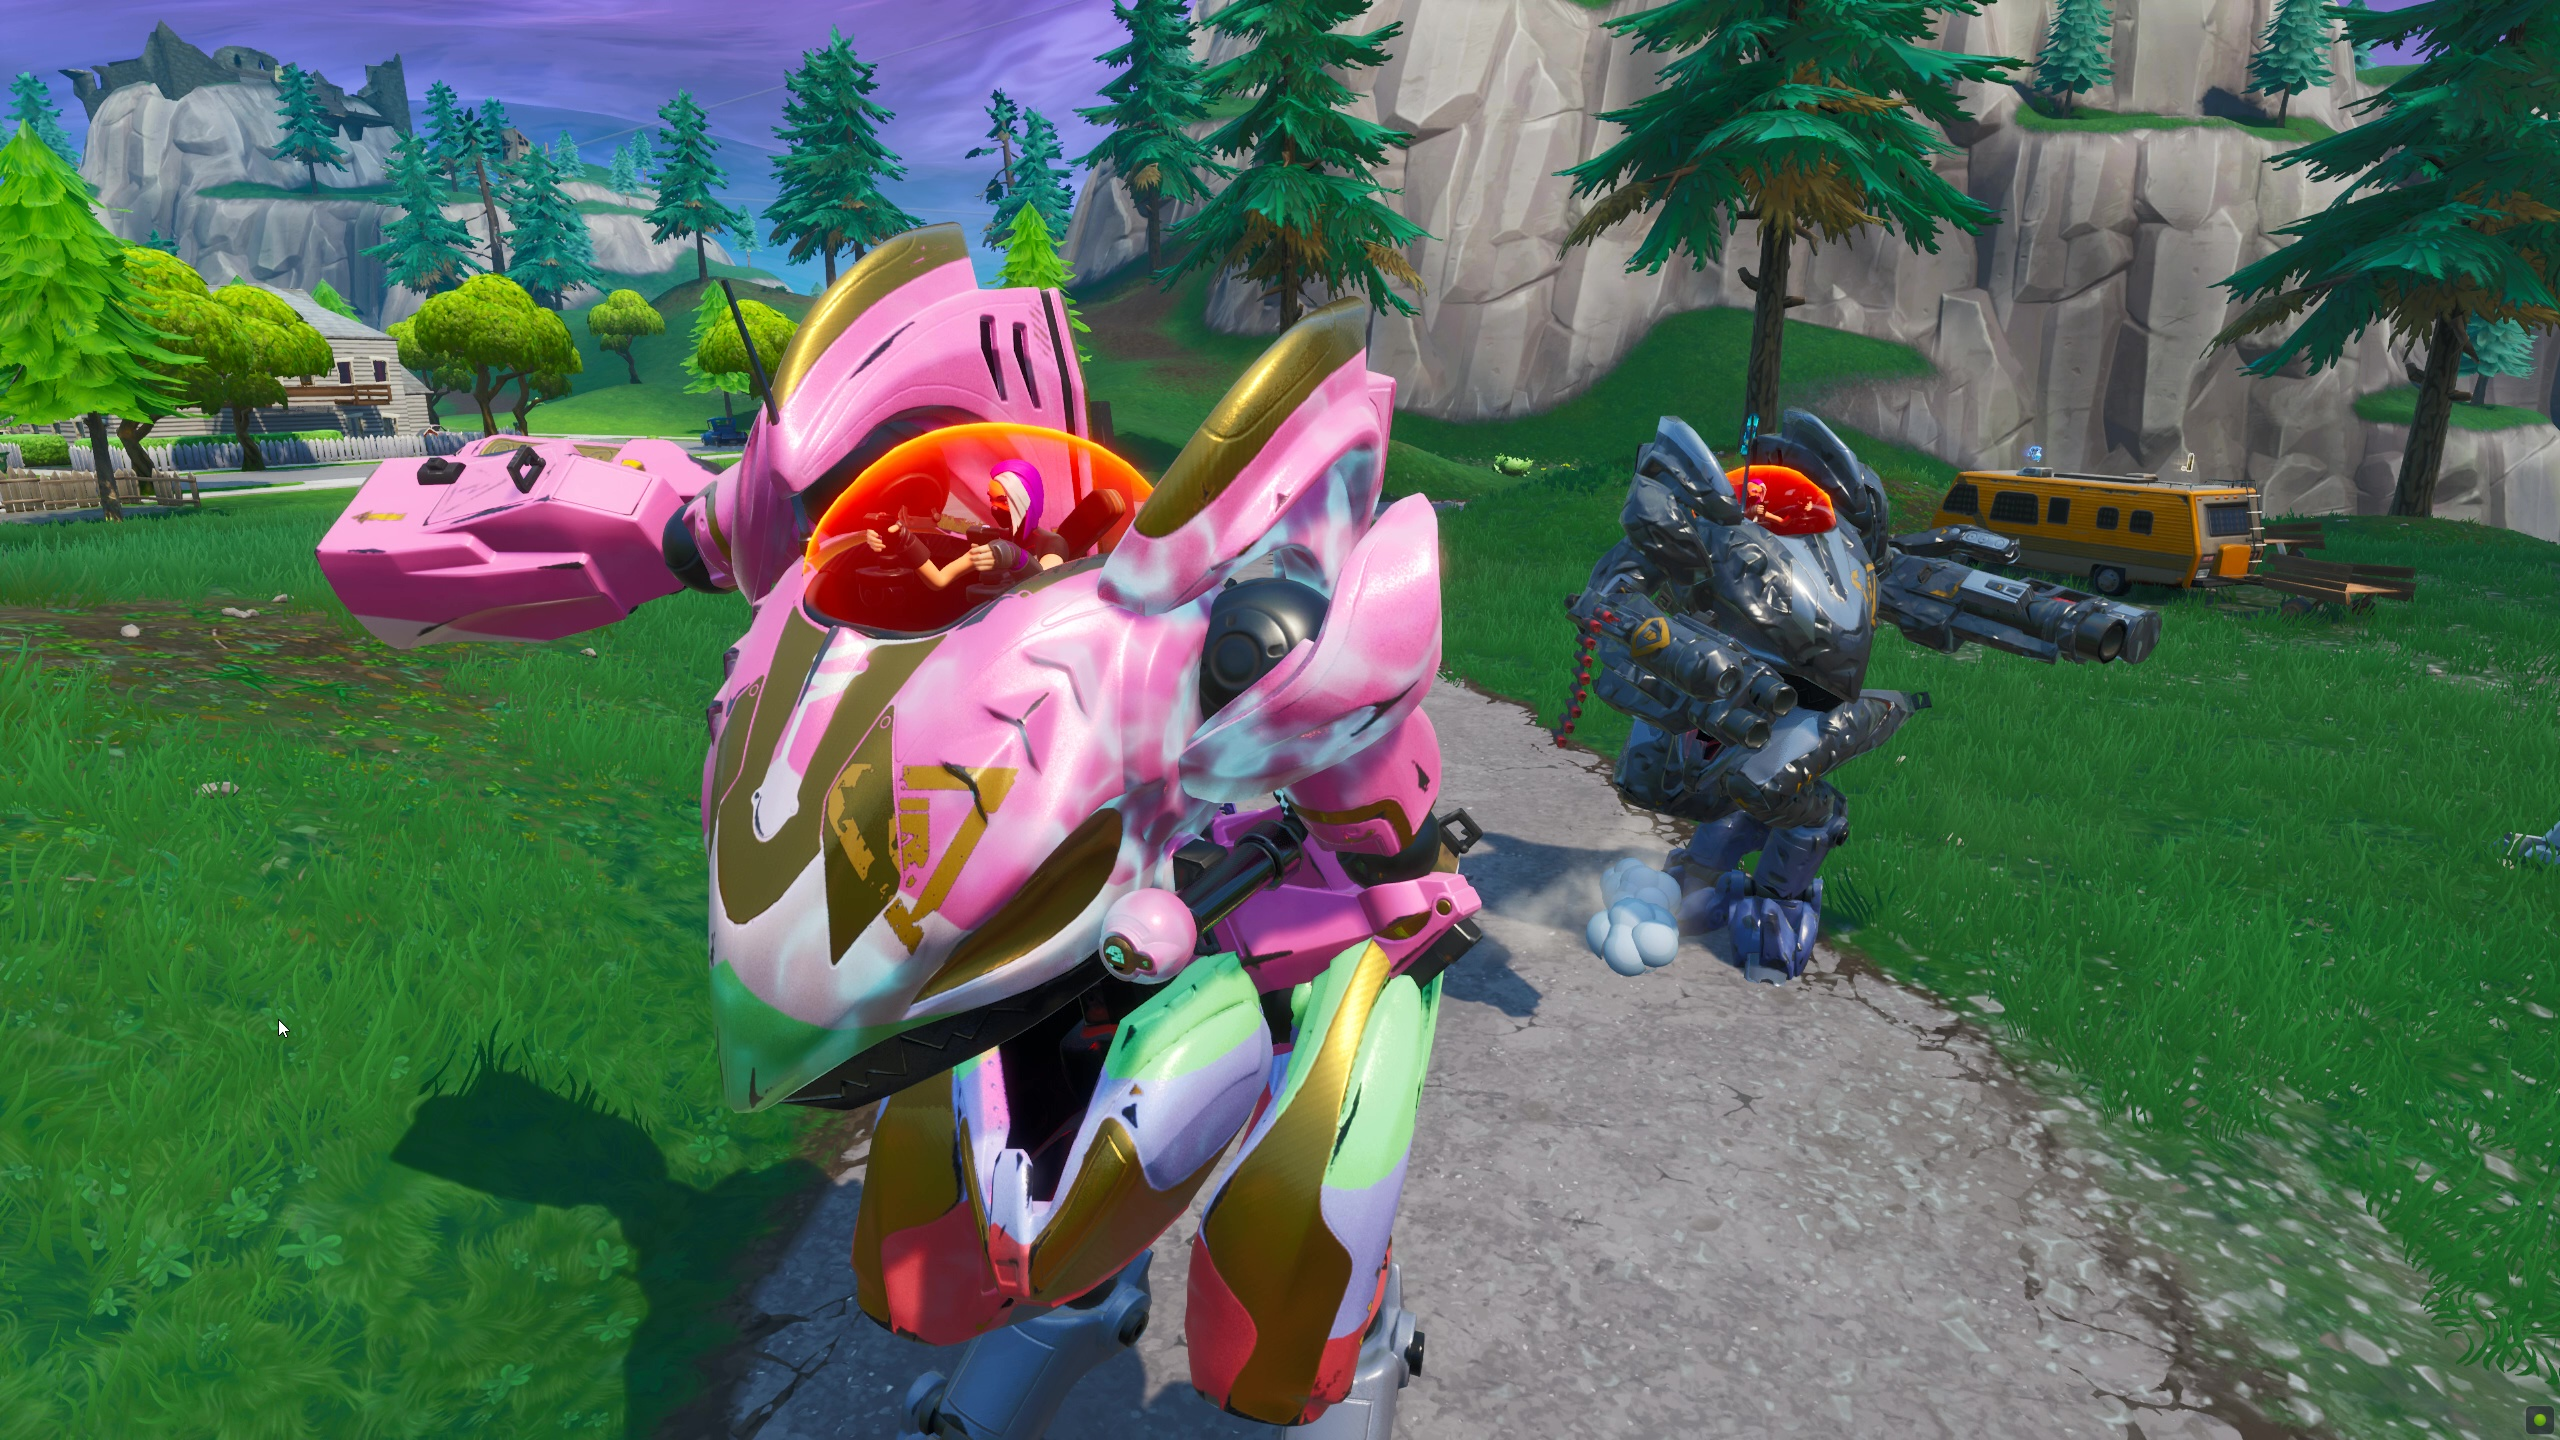 Fortnite mechs: pro teams beg Epic to remove them from